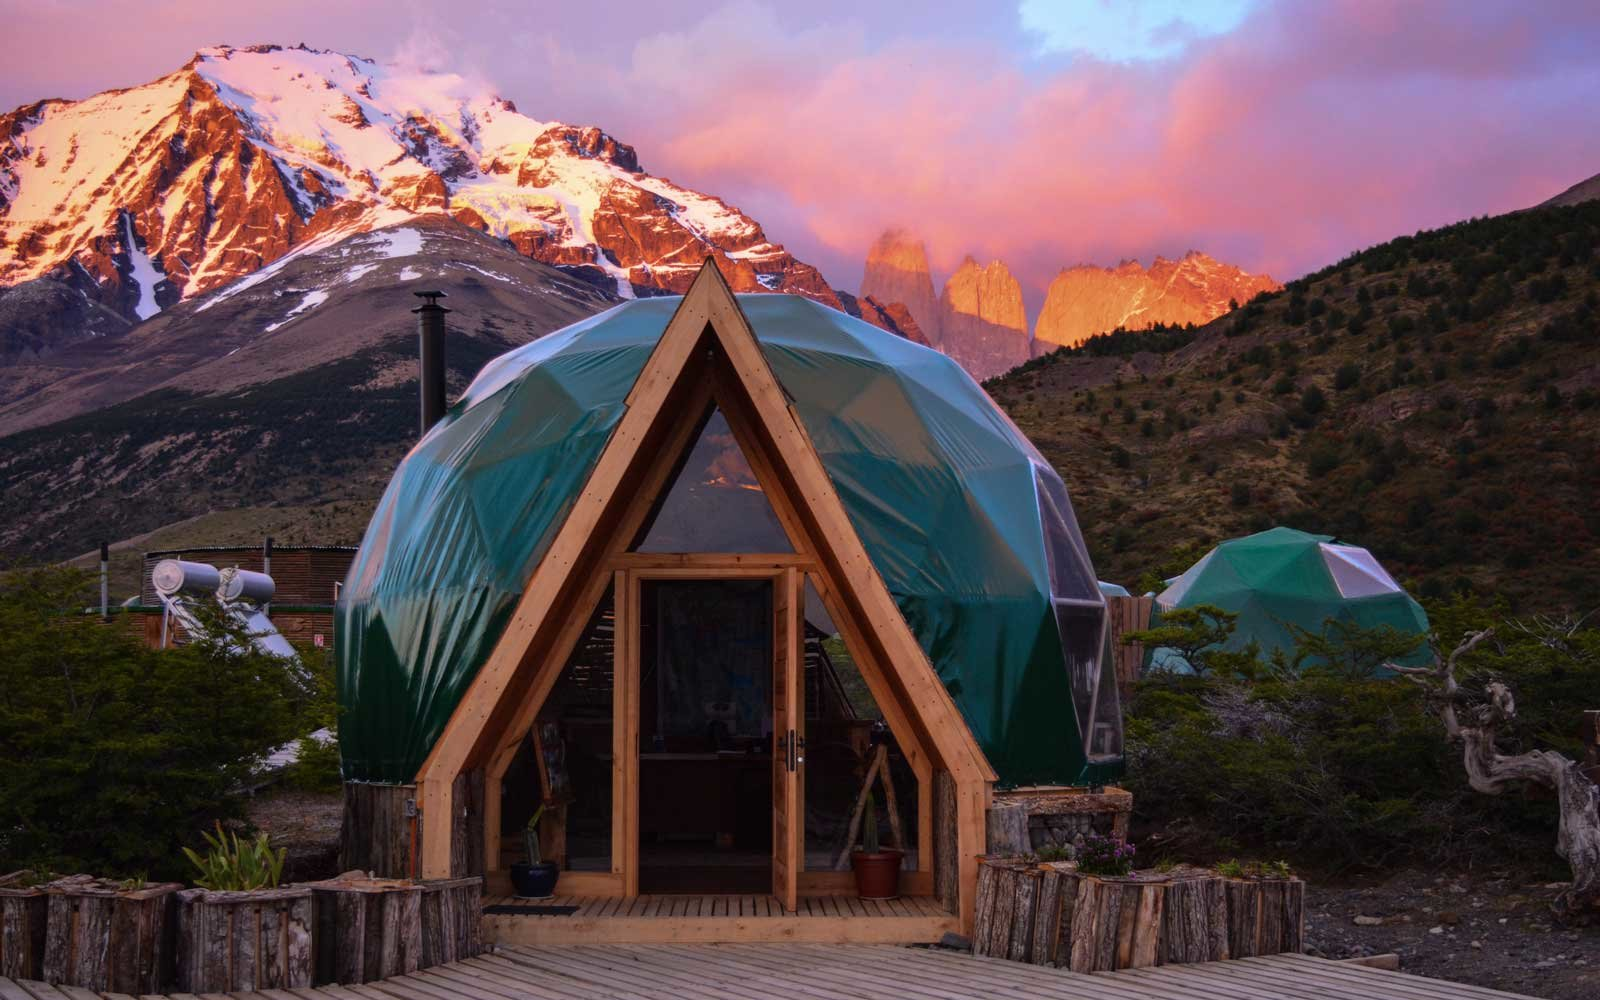 2. EcoCamp Patagonia, Torres del Paine National Park, Chile